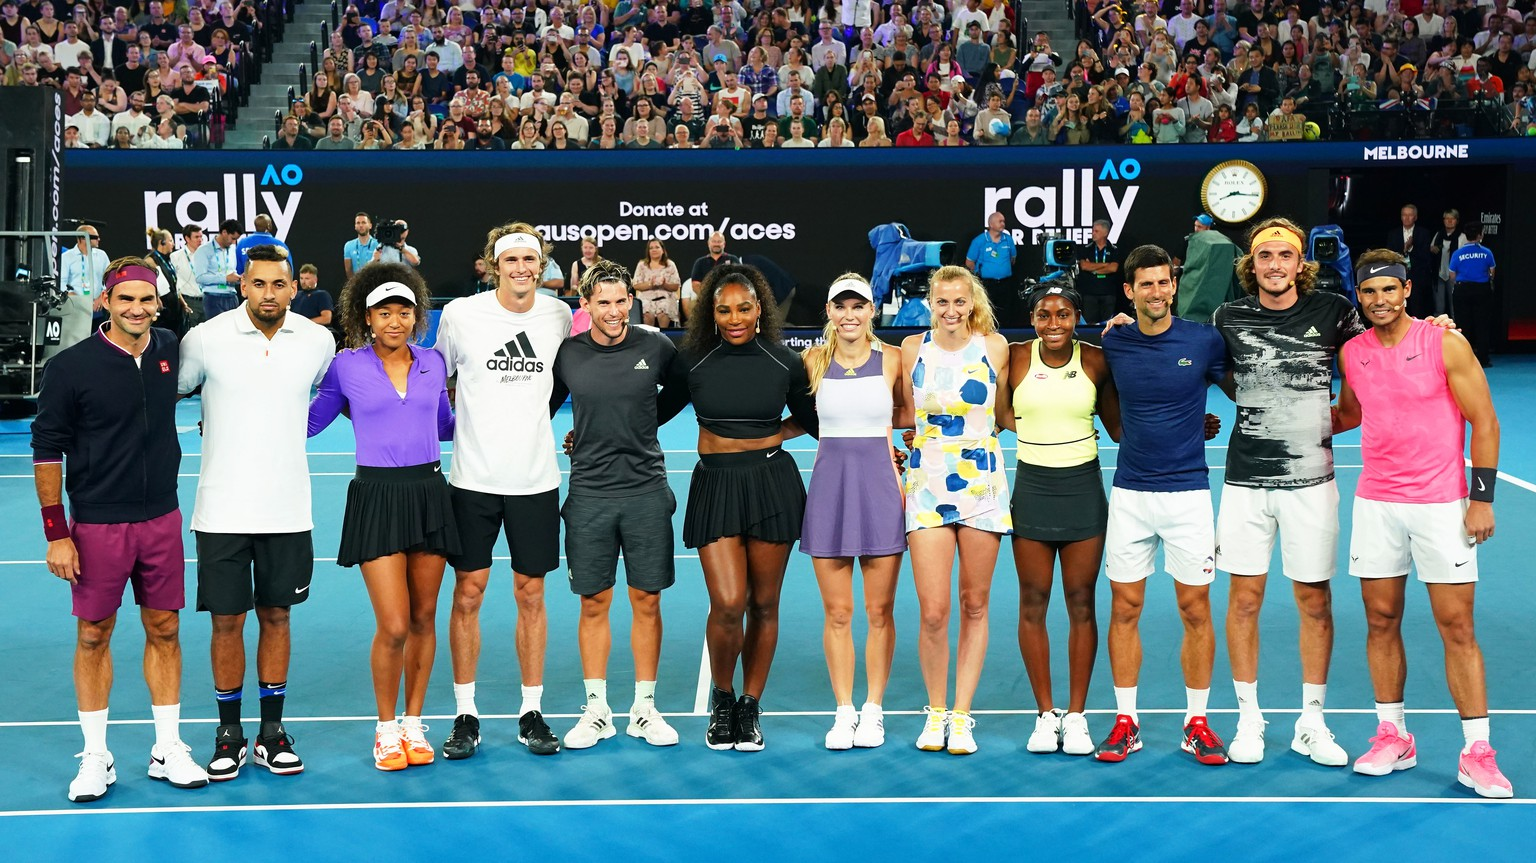 epa08129578 (L-R) Roger Federer of Switzerland, Nick Kyrgios of Australia, Naomi Osaka of Japan, Alexander Zverev of Germany, Dominic Thiem of Austria, Serena Williams of the USA, Caroline Wozniacki of Denmark, Petra Kvitova of the Czech Republic, Coco Gauff of the USA, Novak Djokovic of Serbia, Stefanos Tsitsipas of Greece, and Rafael Nadal of Spain pose for photographers during the Rally For Relief at Rod Laver Arena in Melbourne, Australia, 15 January 2020. Sports people and entertainers have come together for the Rally for Relief at Rod Laver Arena in Melbourne to raise money for bushfire relief efforts across Australia.  EPA/SCOTT BARBOUR AUSTRALIA AND NEW ZEALAND OUT